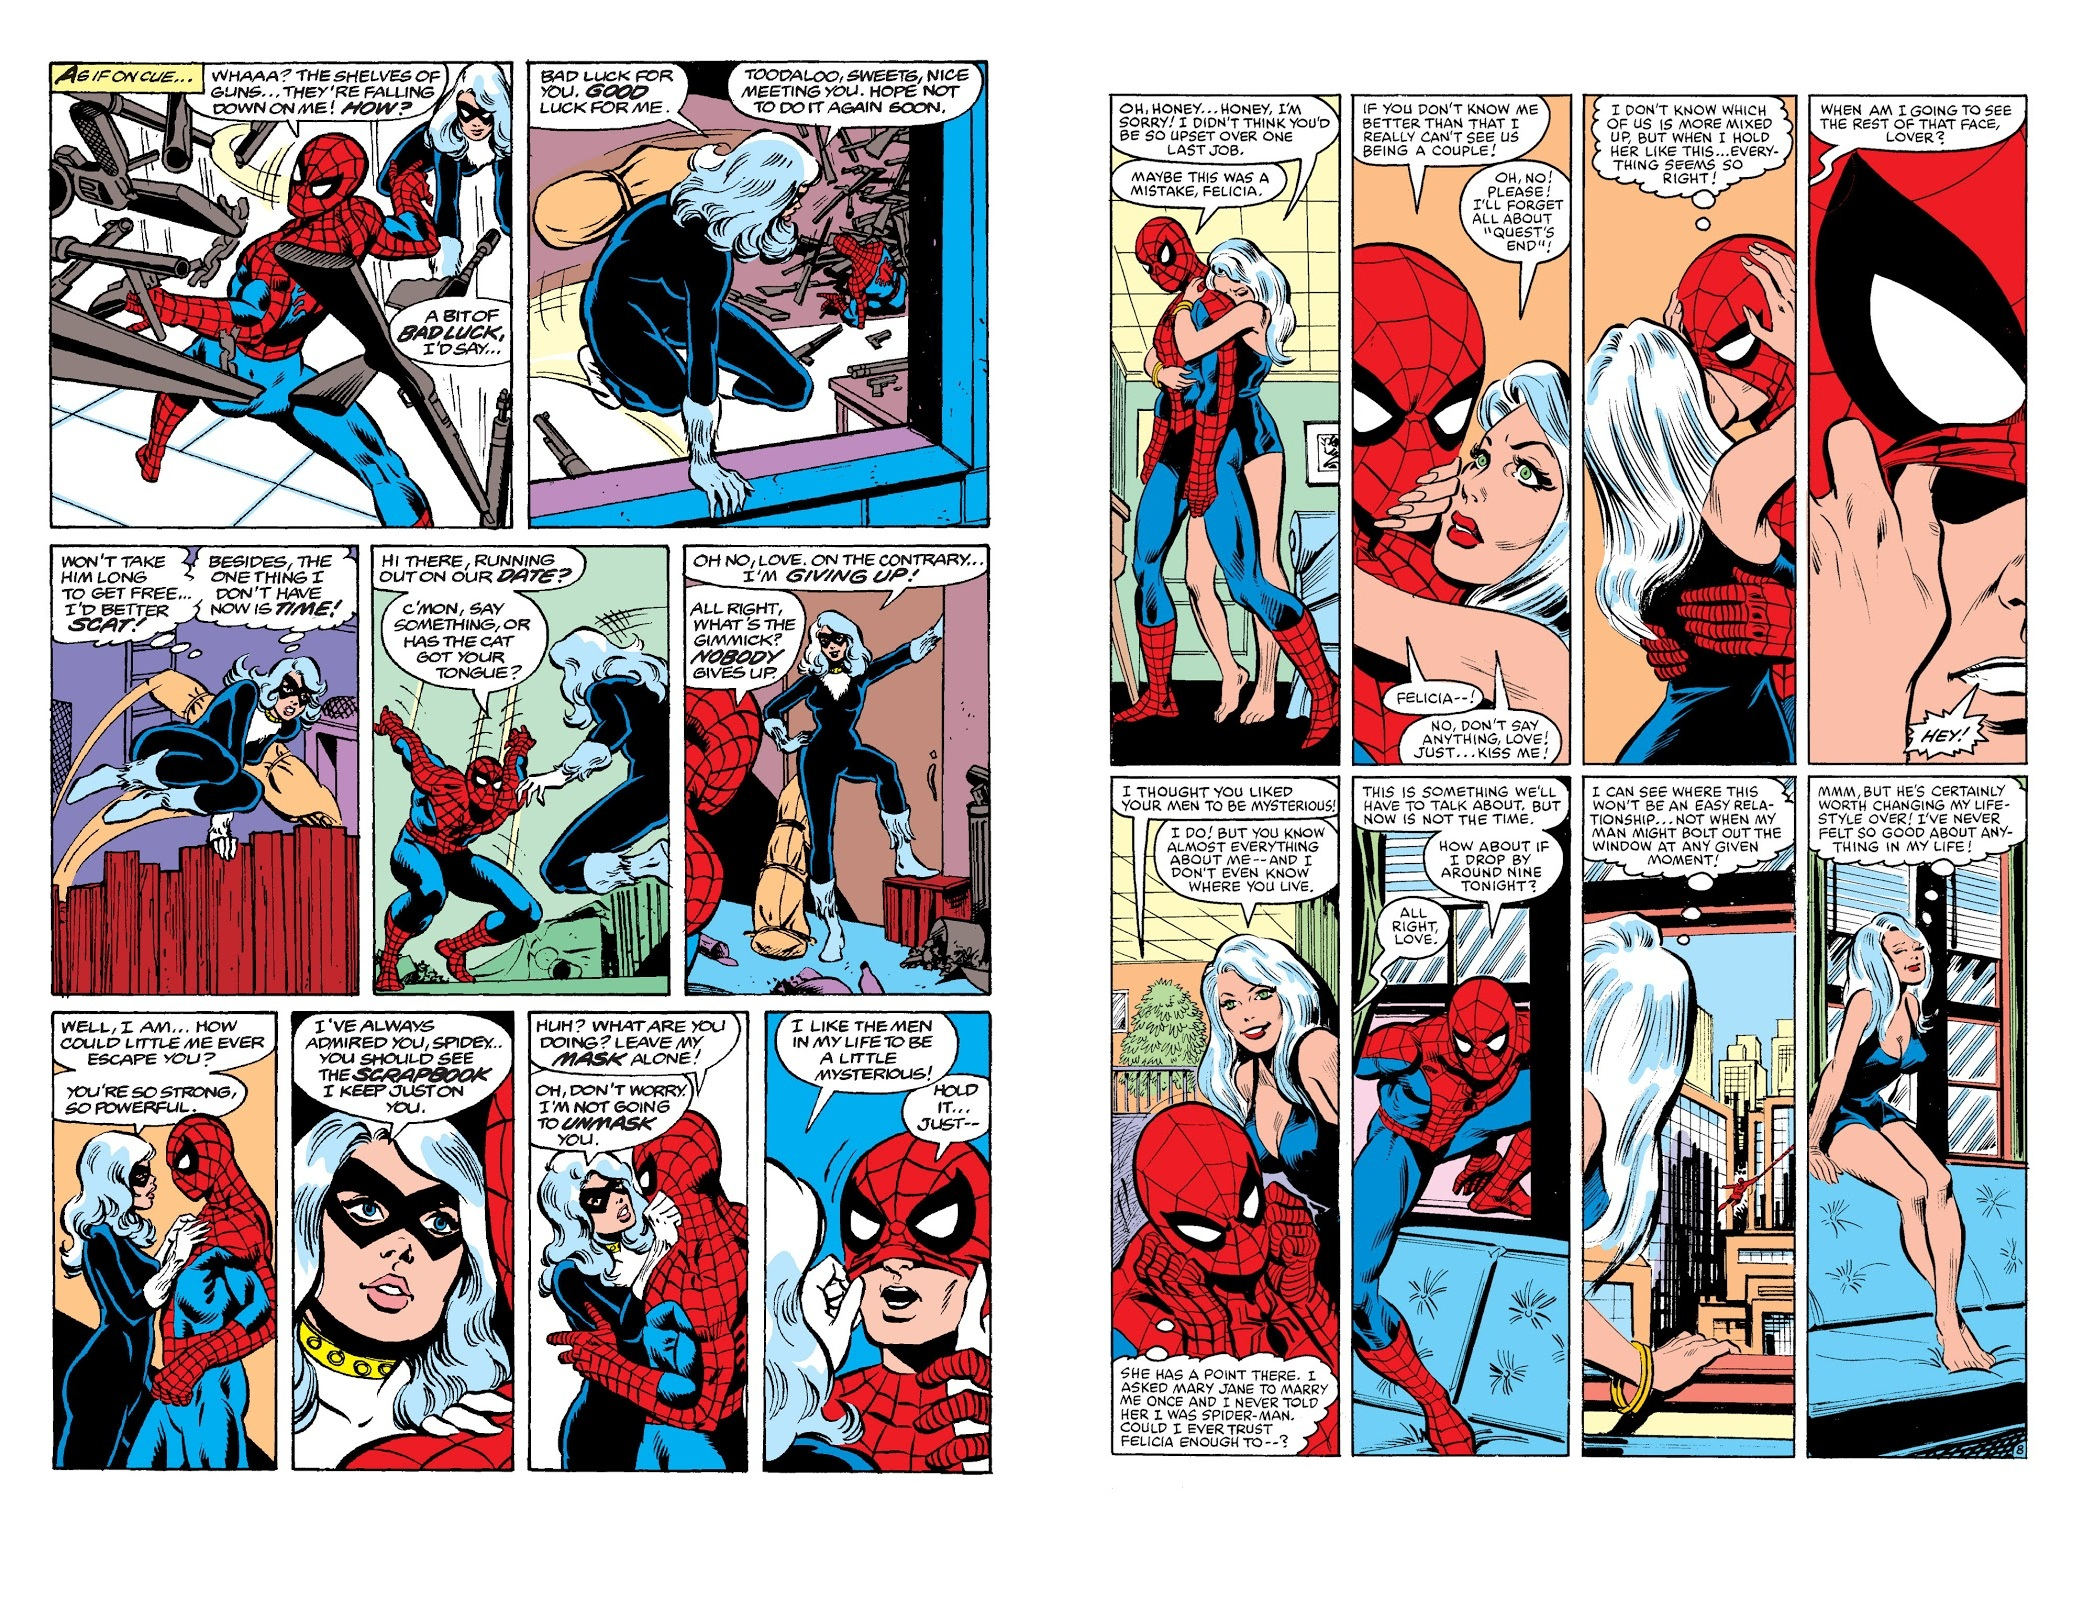 Spider-Man vs the Black Cat review